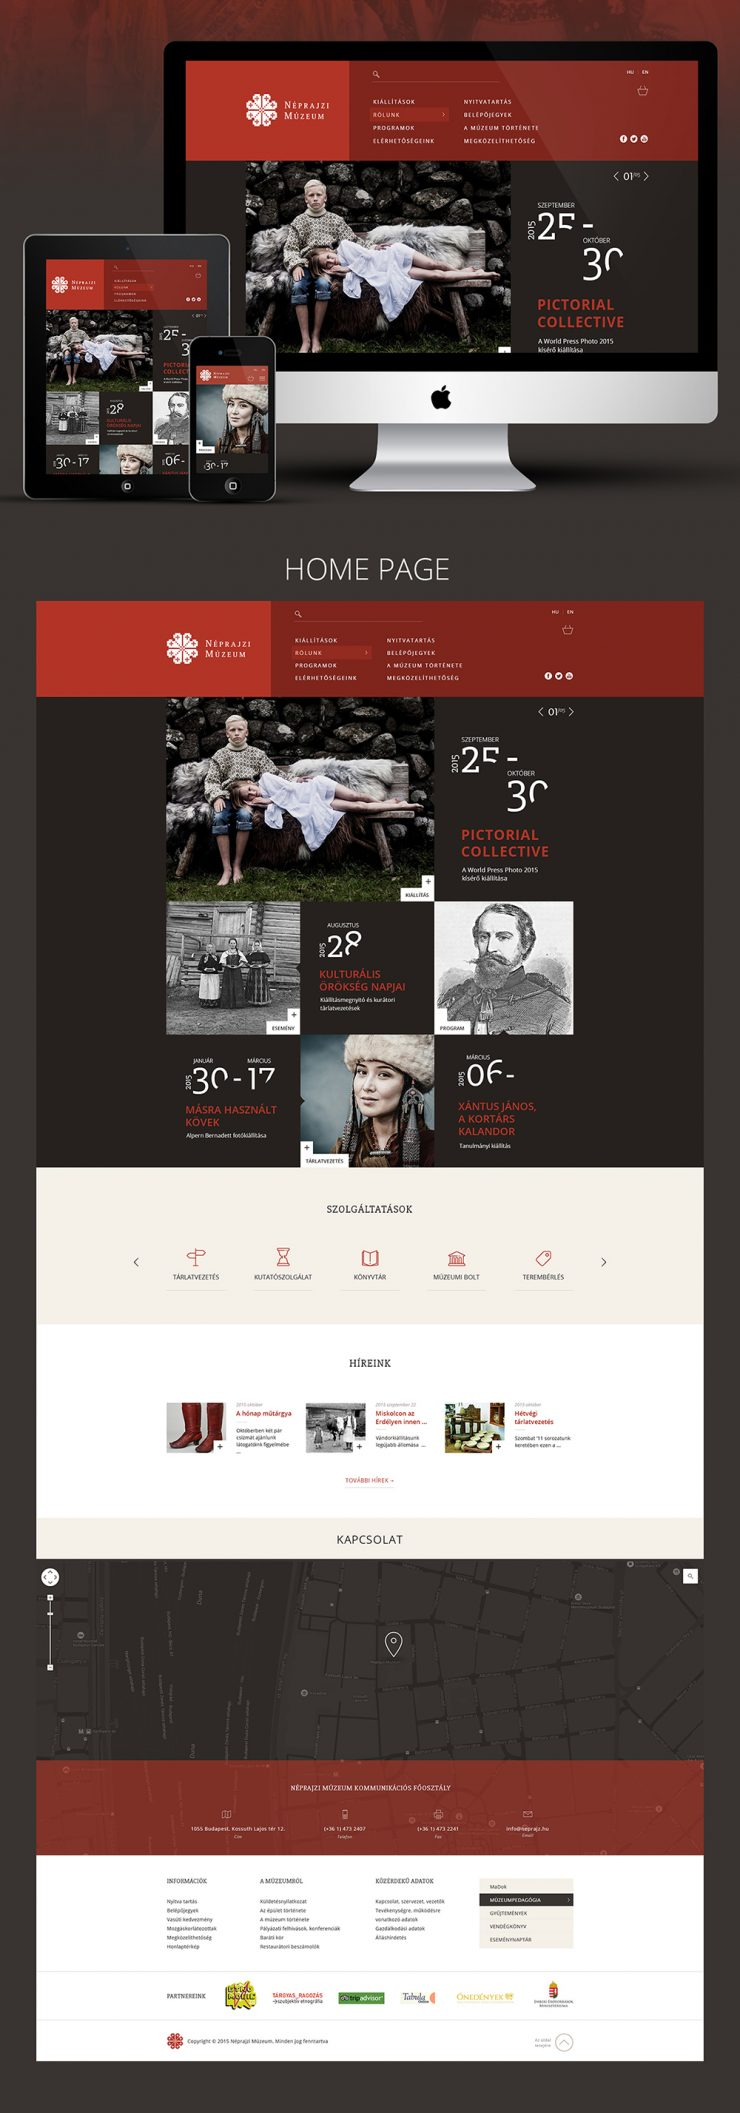 Photo Gallery Exhibition Website Free PSD Landing page